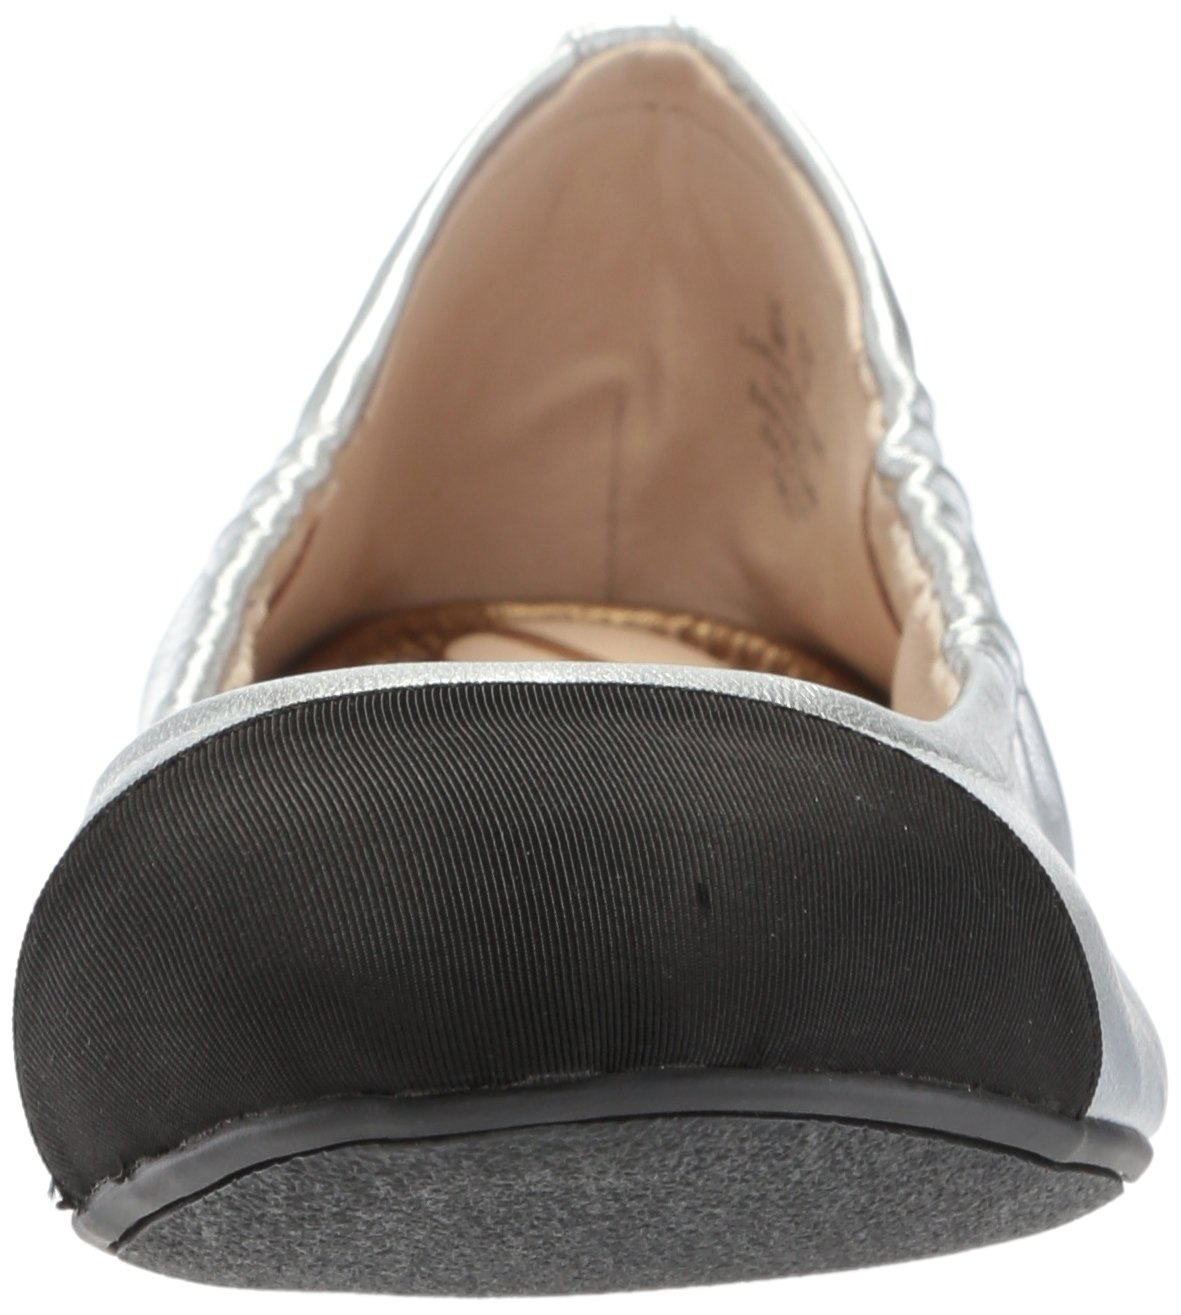 Sam Edelman Women's fraley Ballet Flat, Soft Silver/Black, 7 Medium US by Sam Edelman (Image #4)